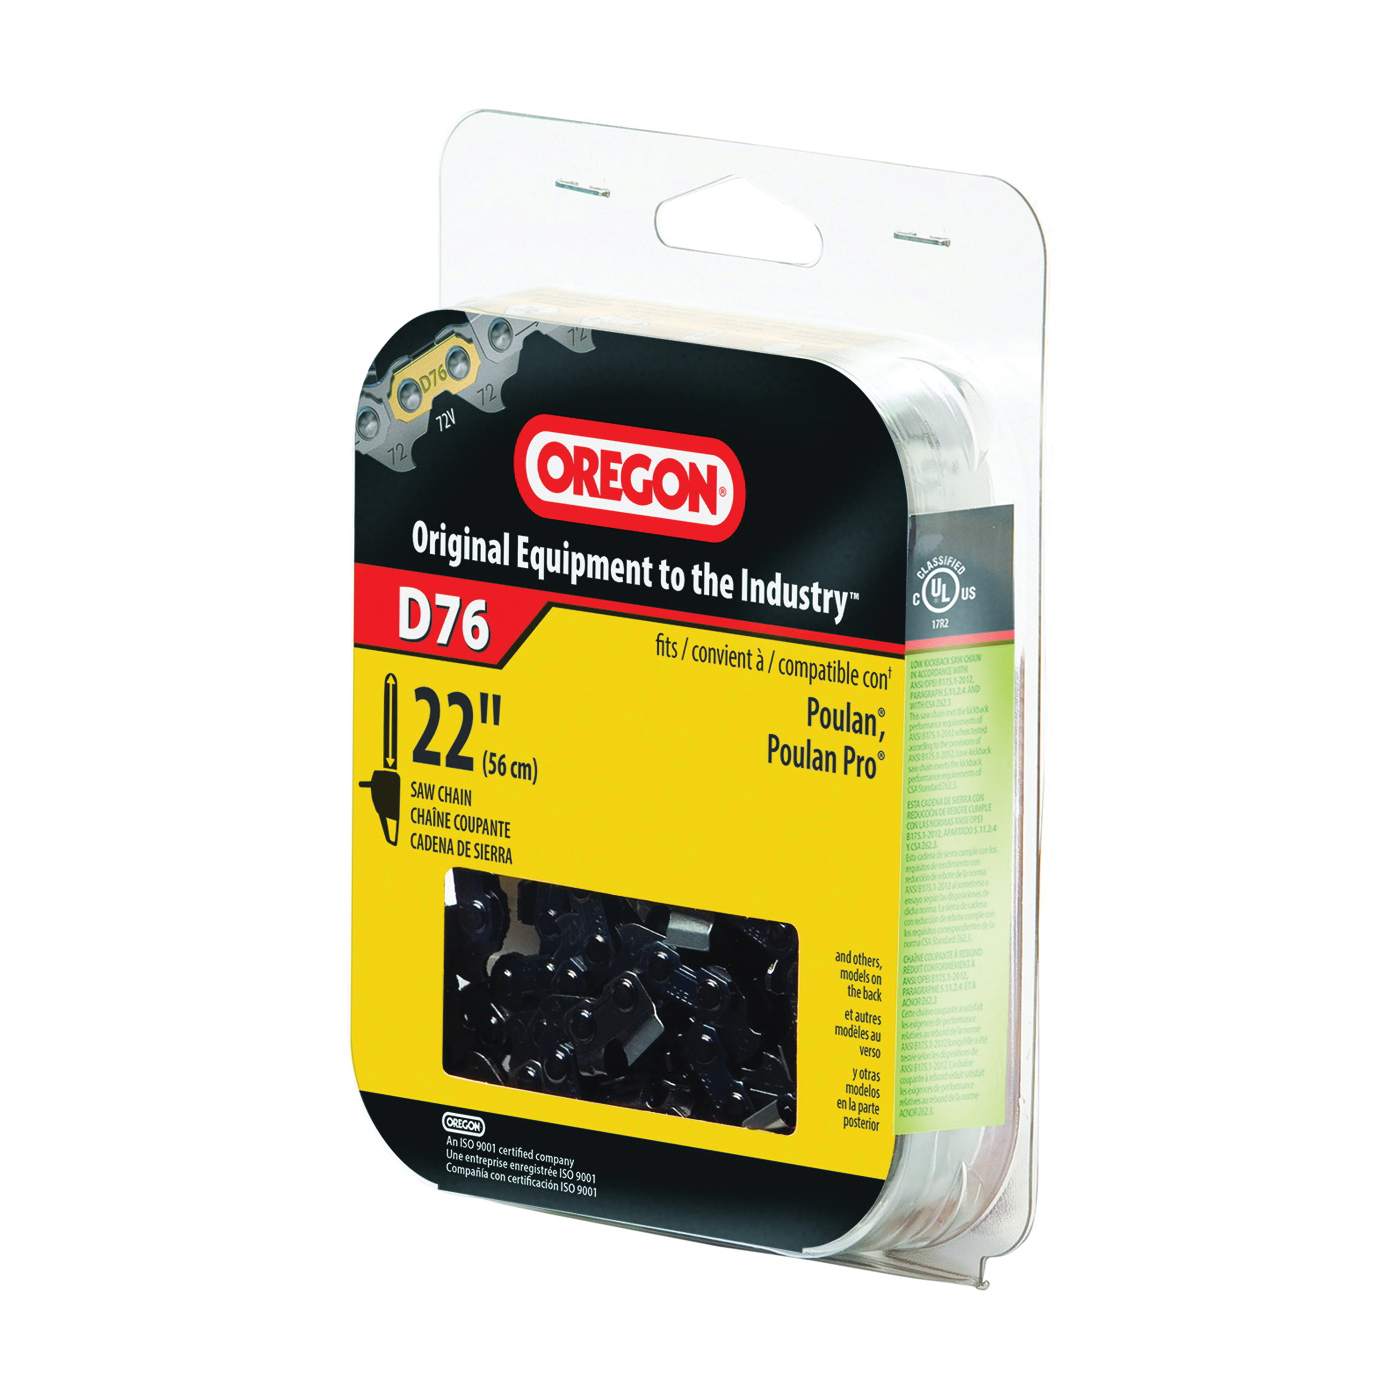 Picture of Oregon D76 Chainsaw Chain, 22 in L Bar, 0.05 Gauge, 3/8 in TPI/Pitch, 76 -Link